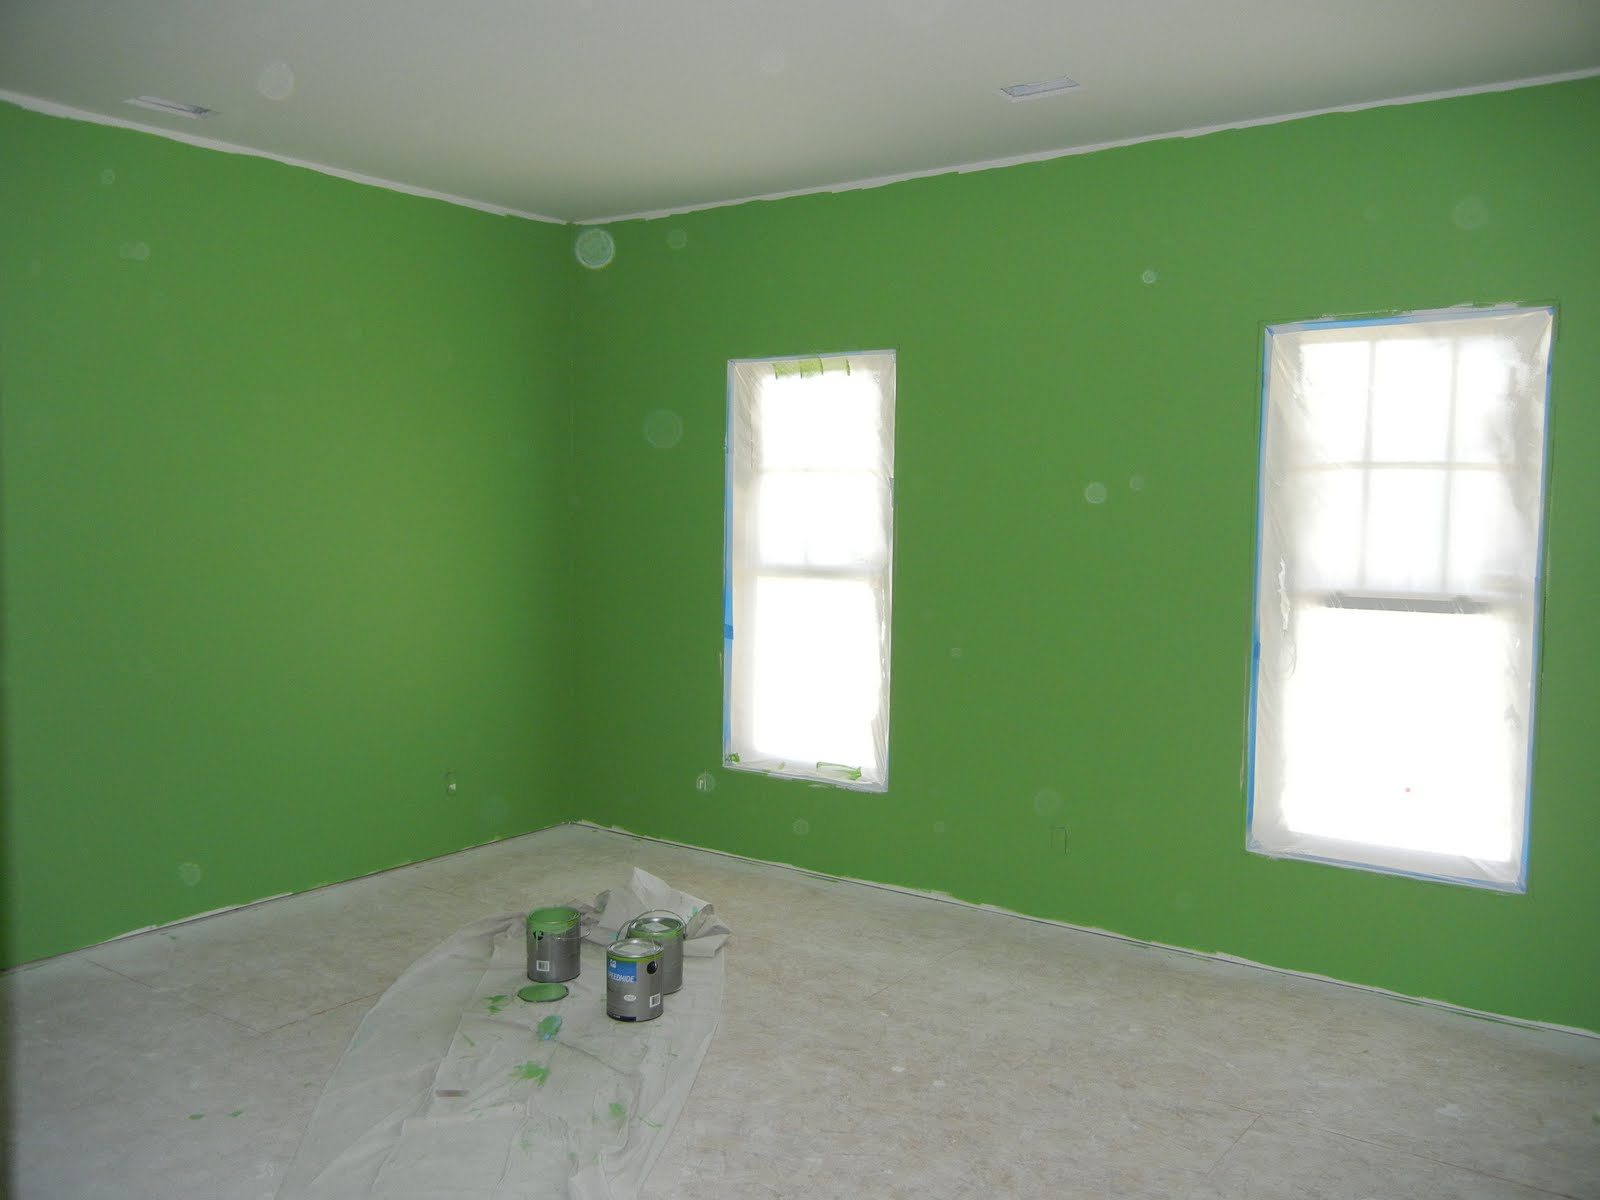 Double oak plantation room colors revealed What color room